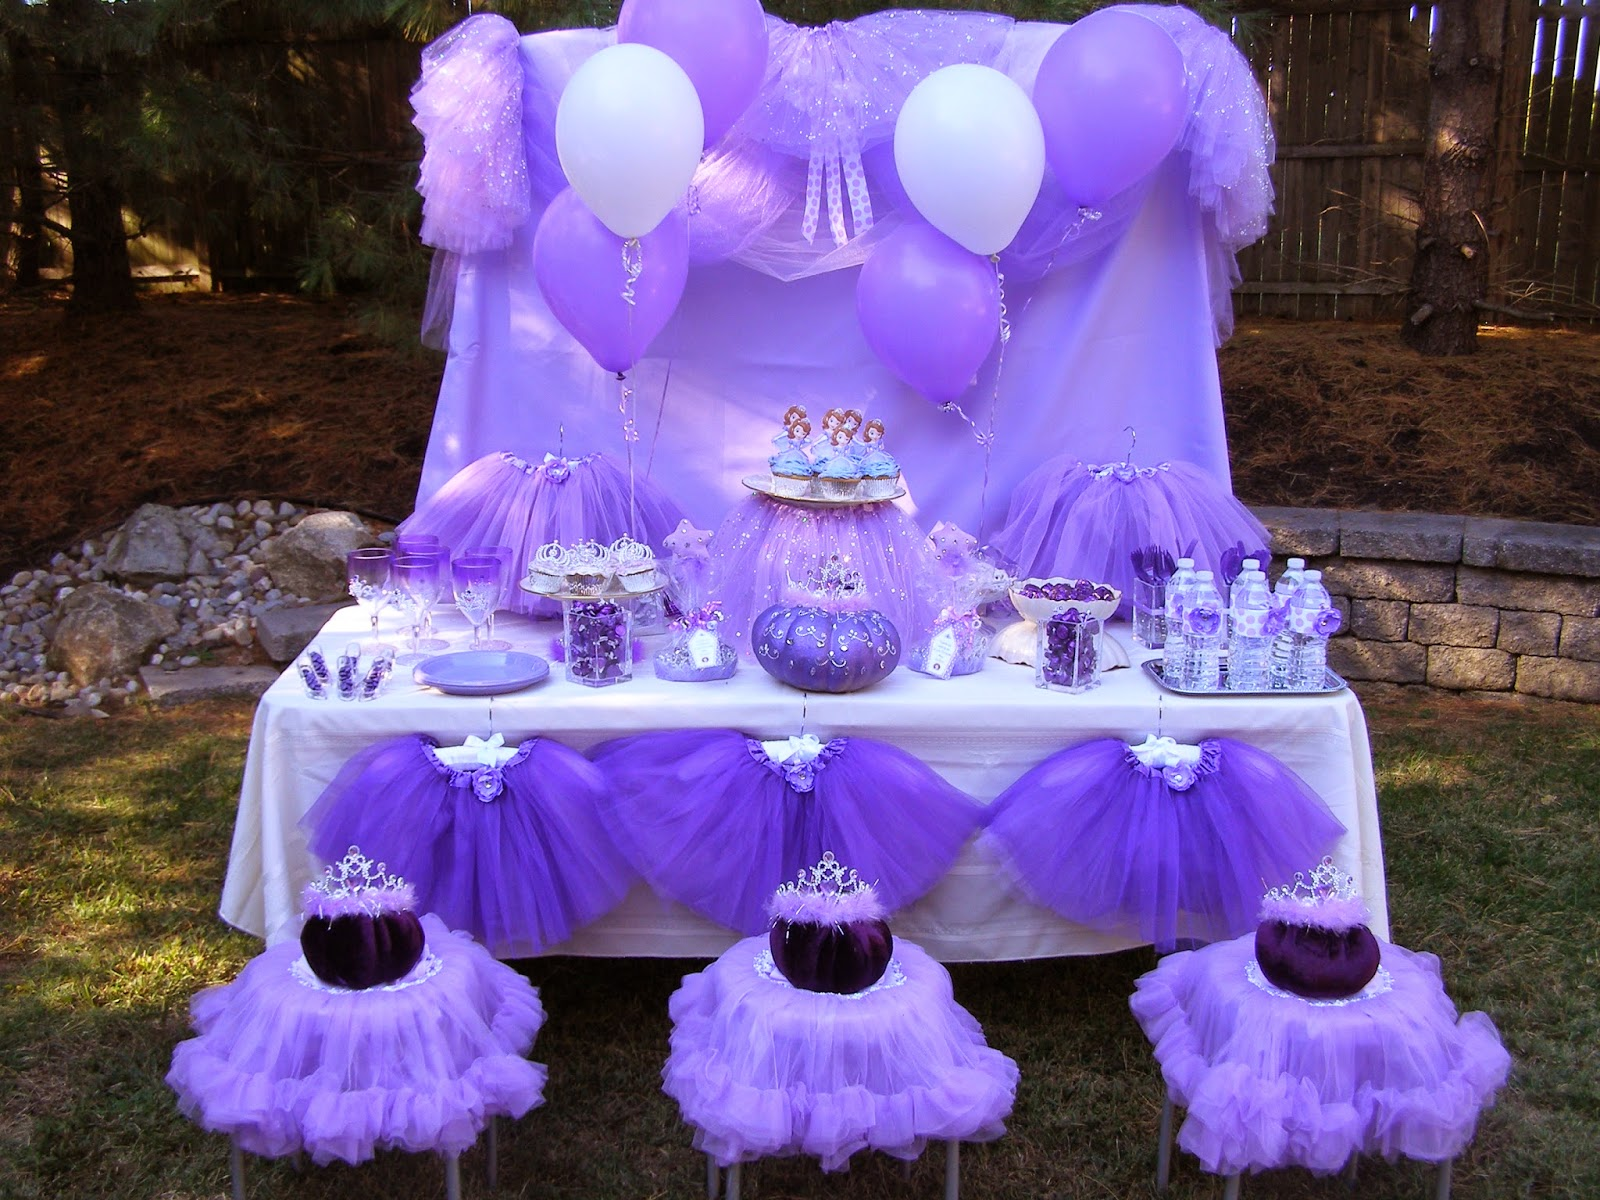 The Princess Birthday Blog: October 2014